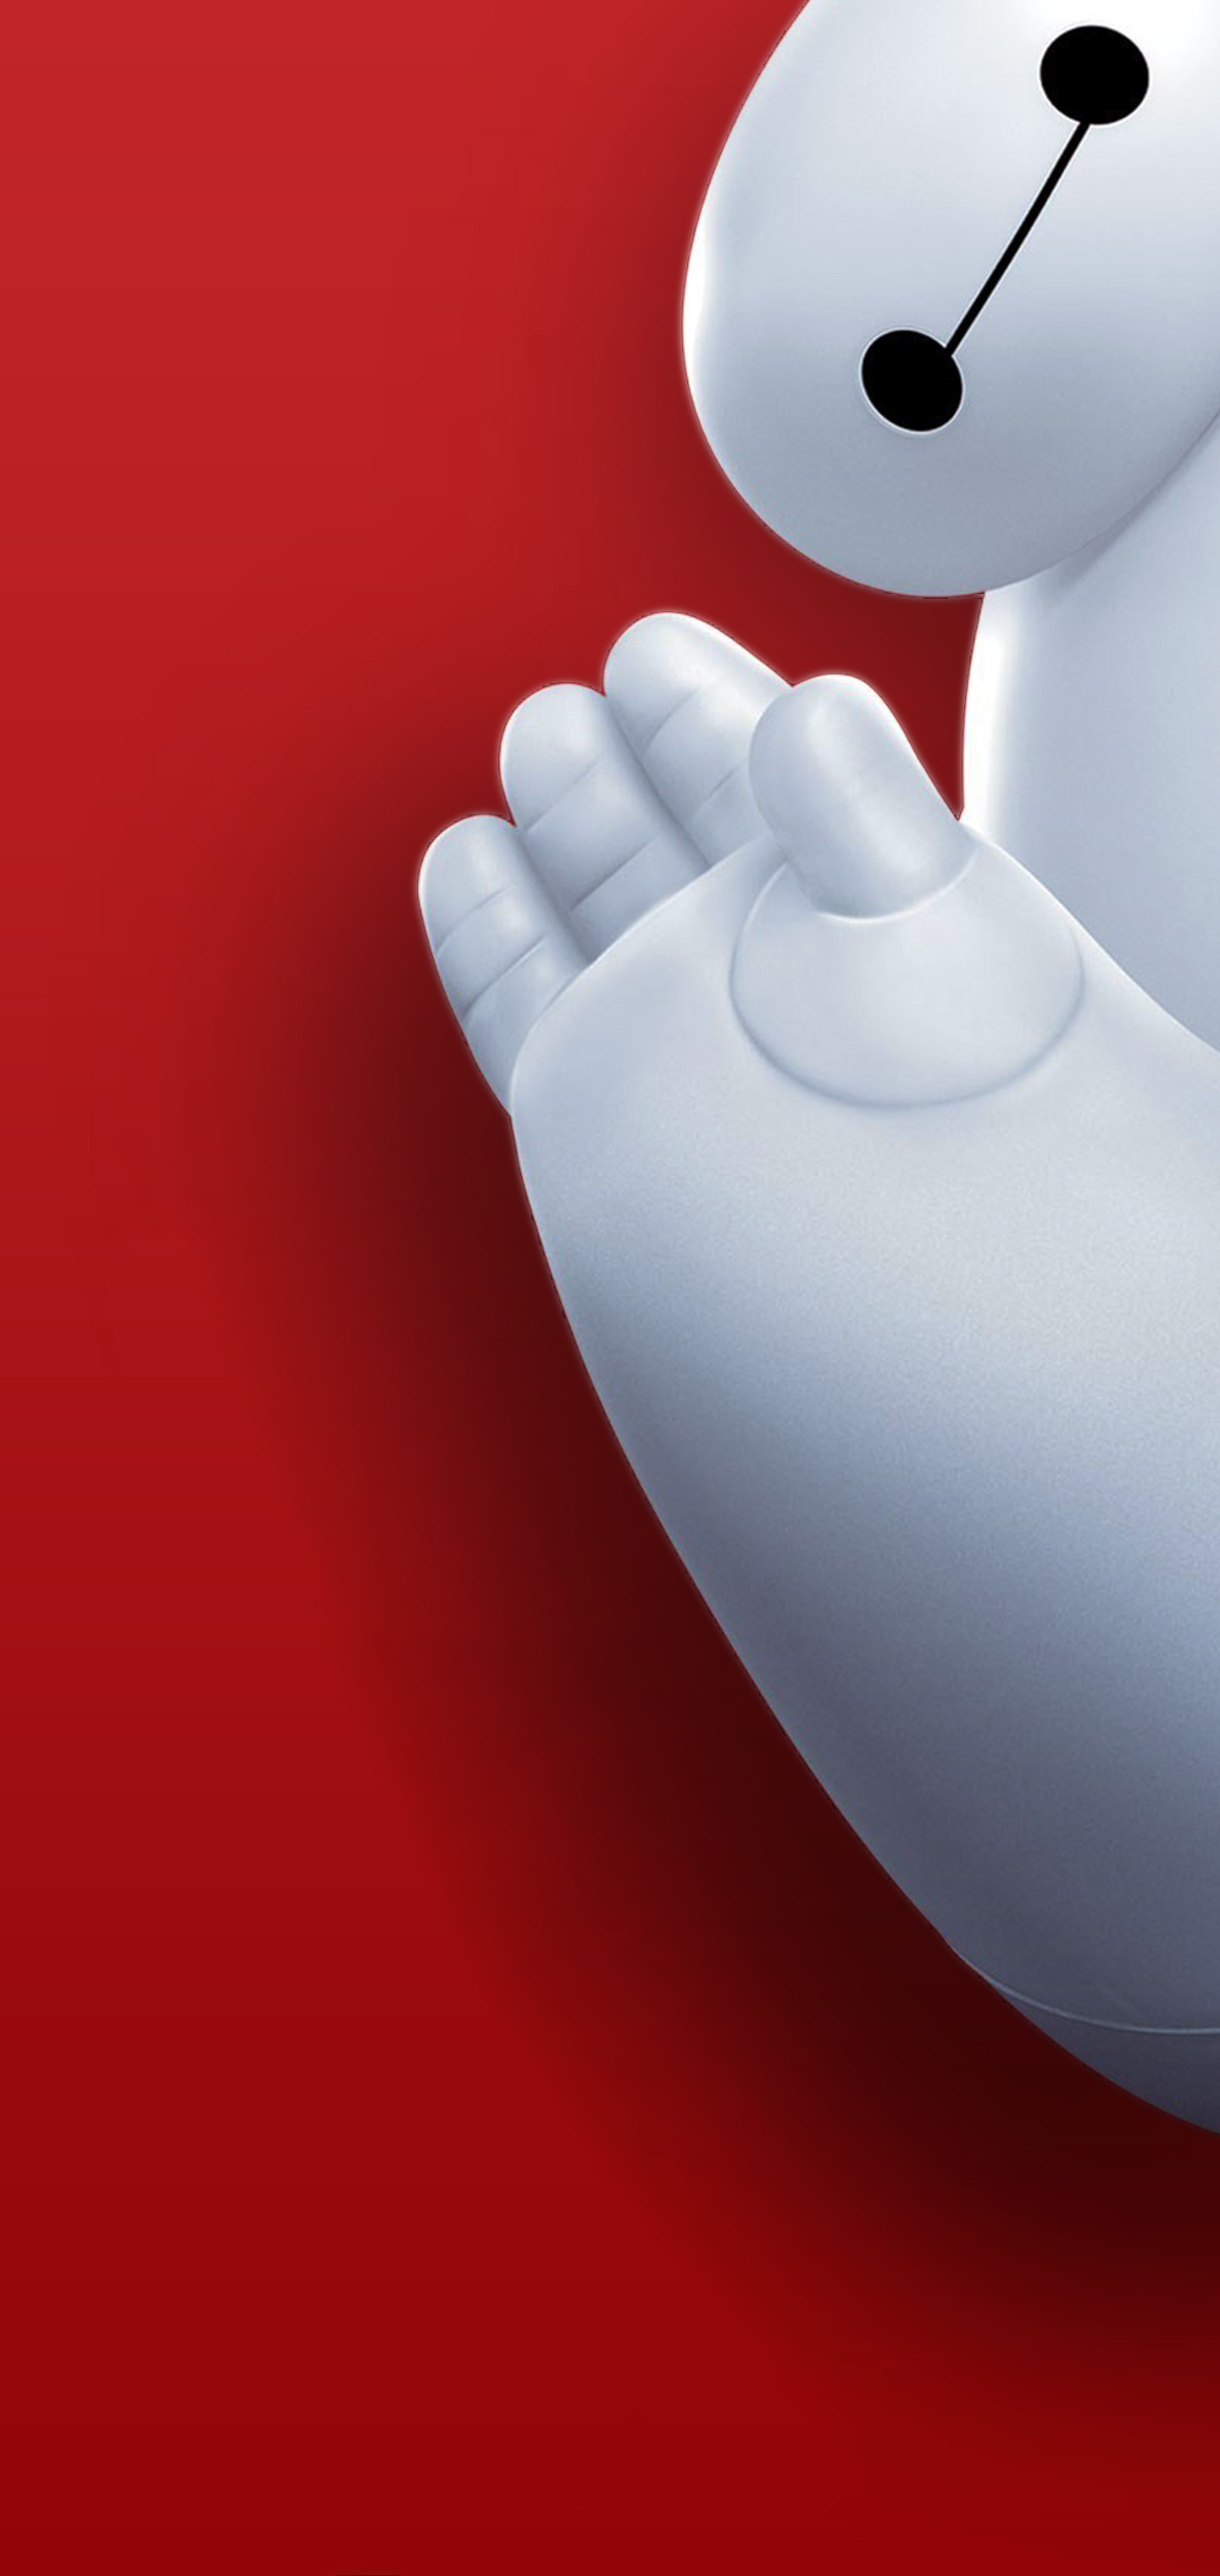 Free Download Big Hero 6 Baymax S10 Galaxy S10 Hole Punch Wallpaper 1440x3040 For Your Desktop Mobile Tablet Explore 35 Samsung Galaxy S10e Wallpapers Samsung Galaxy S10e Wallpapers Samsung